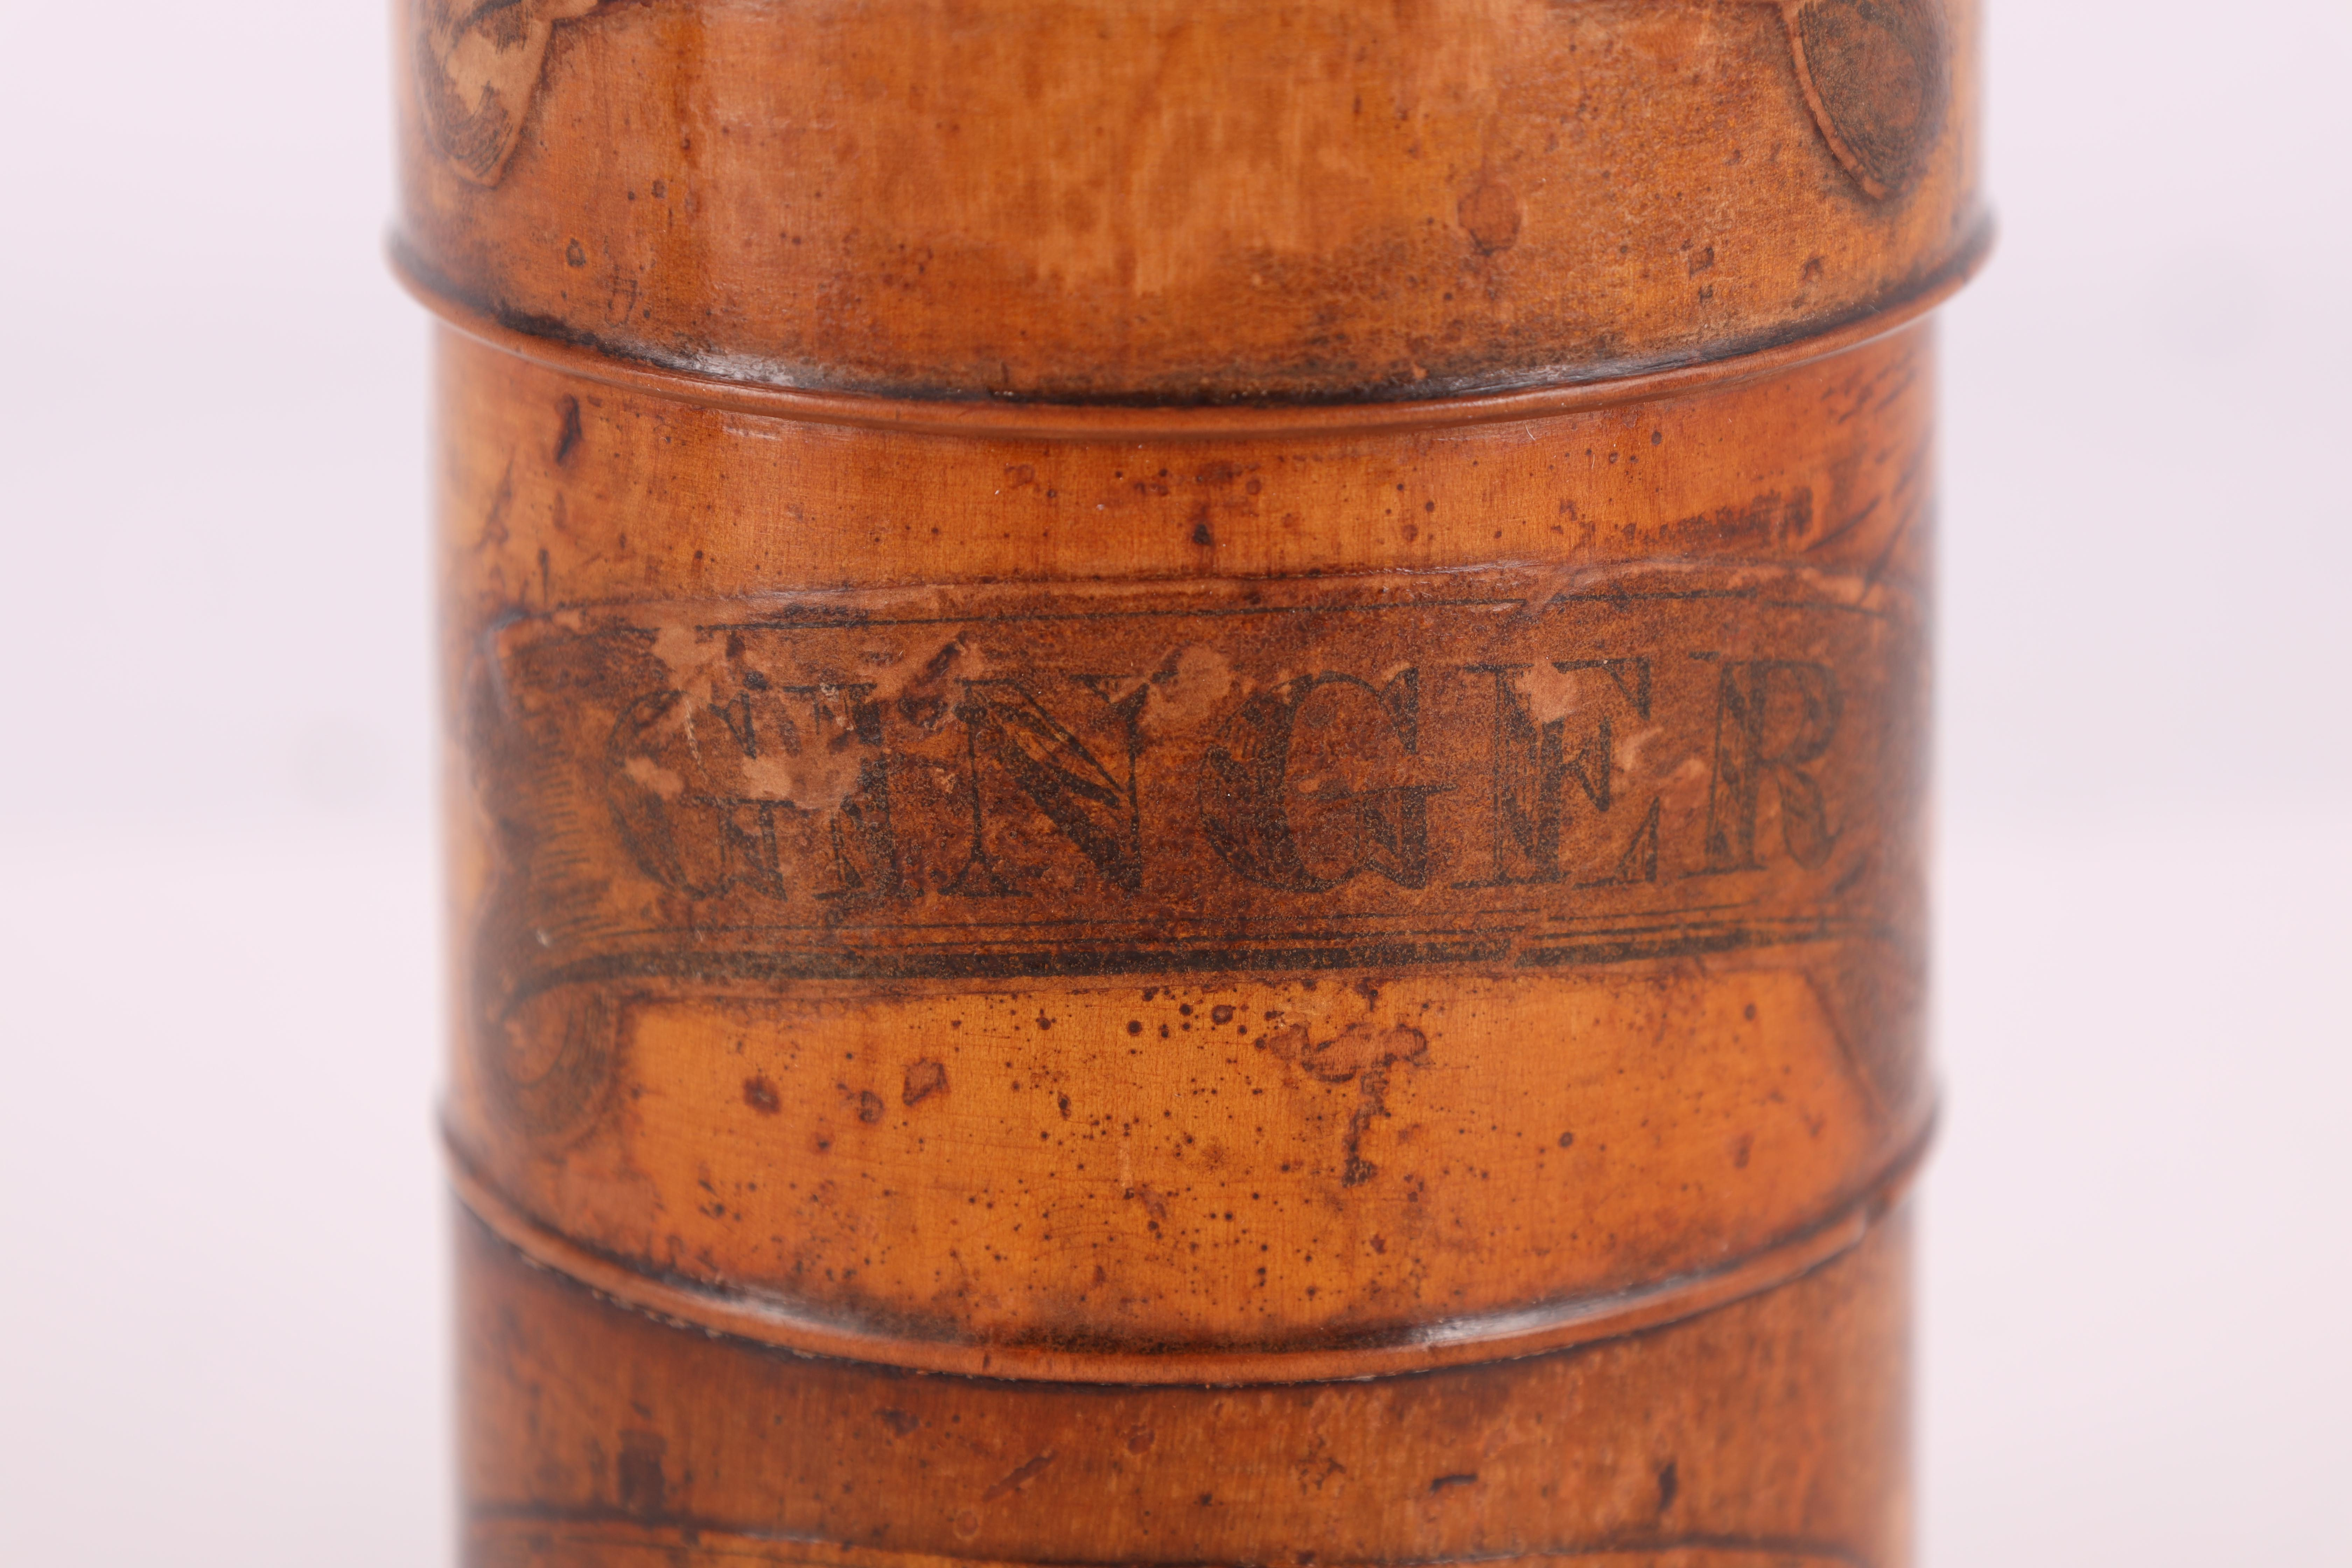 TWO EARLY 19TH CENTURY SYCAMORE TREEN SPICE TOWERS with original labels, the three stack 15cm - Image 9 of 13